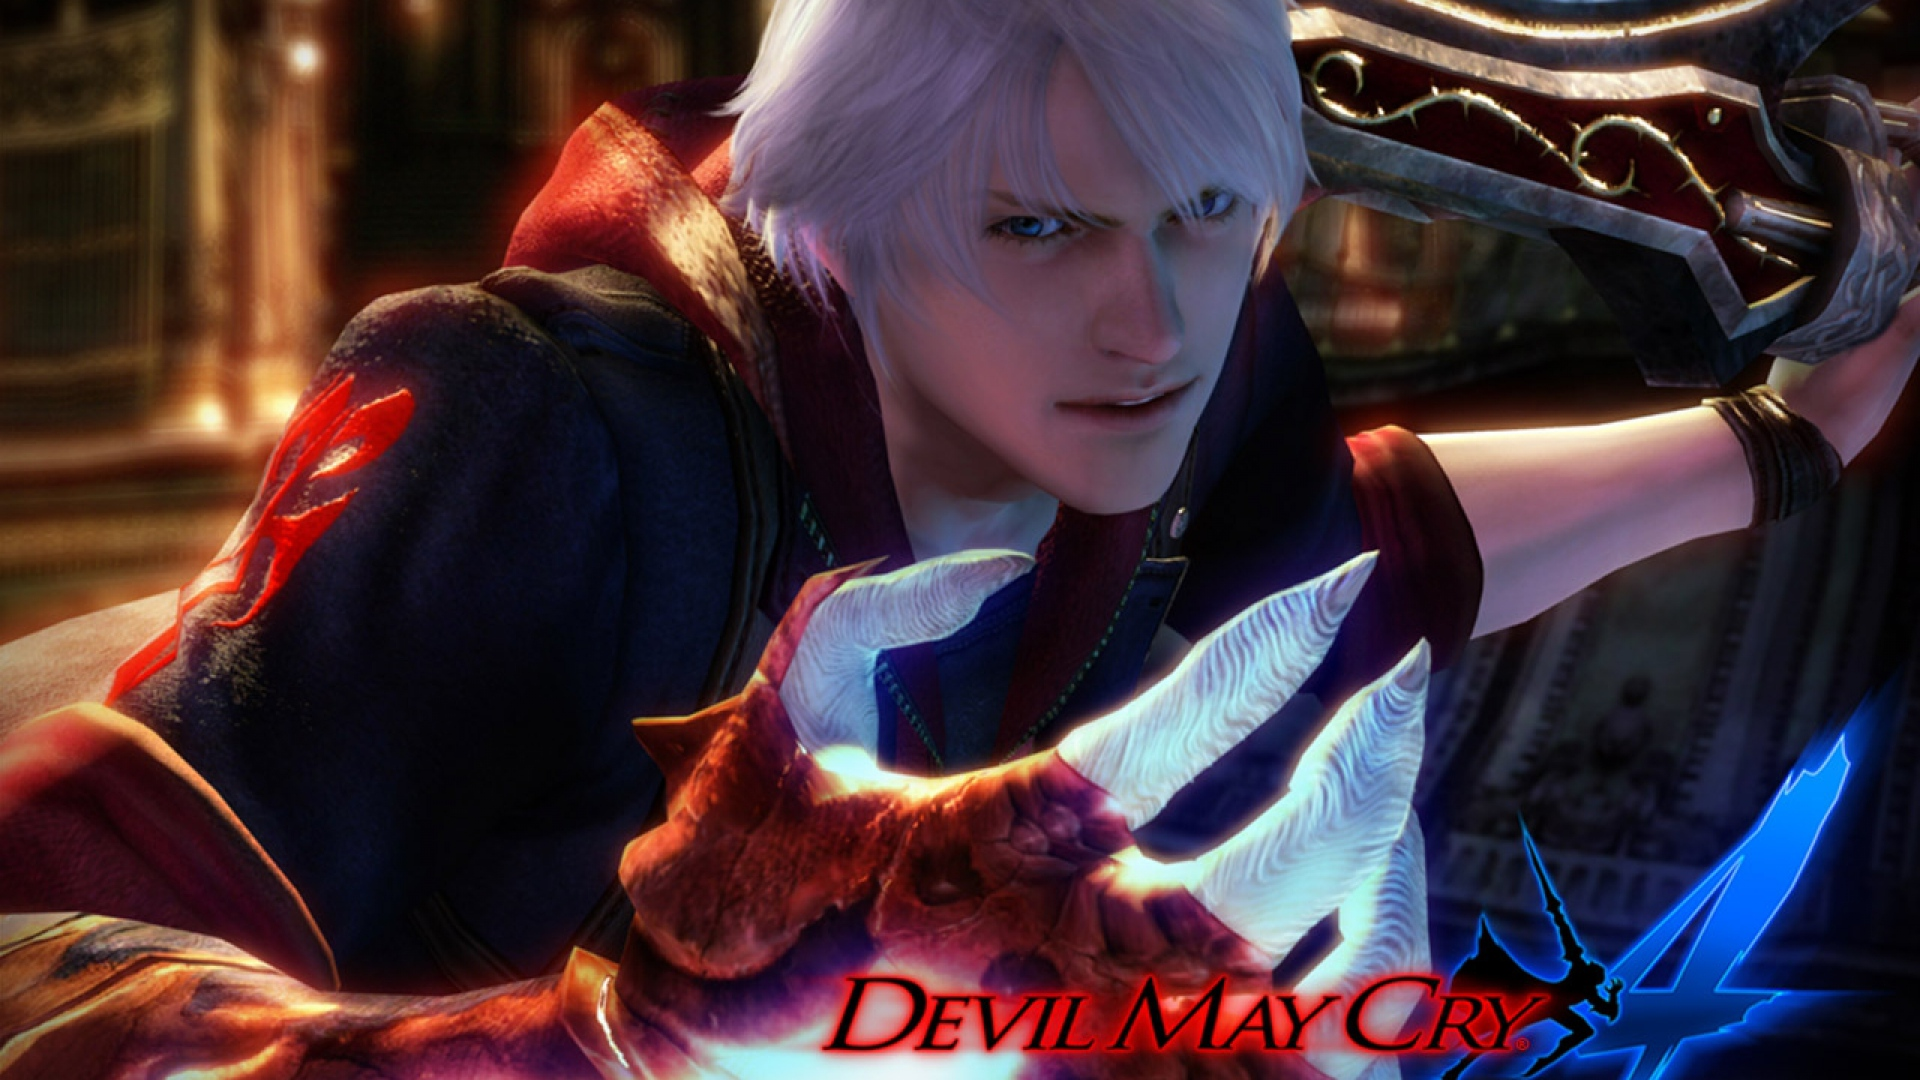 Download Wallpaper 1920x1080 Devil May Cry 4 Nero Hand Sword